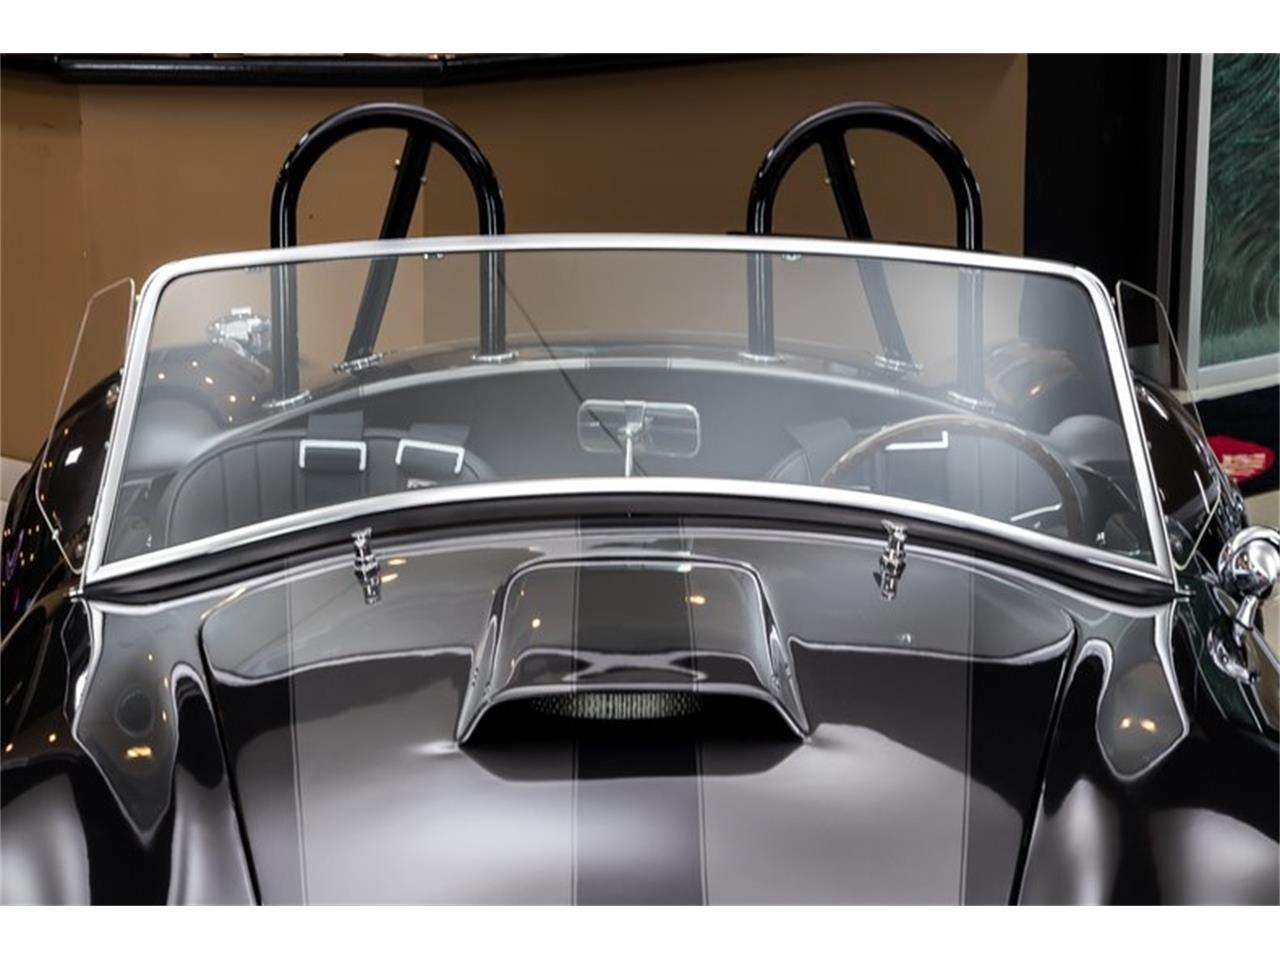 Large Picture of 1966 Cobra located in Michigan - $49,900.00 Offered by Vanguard Motor Sales - QF7X